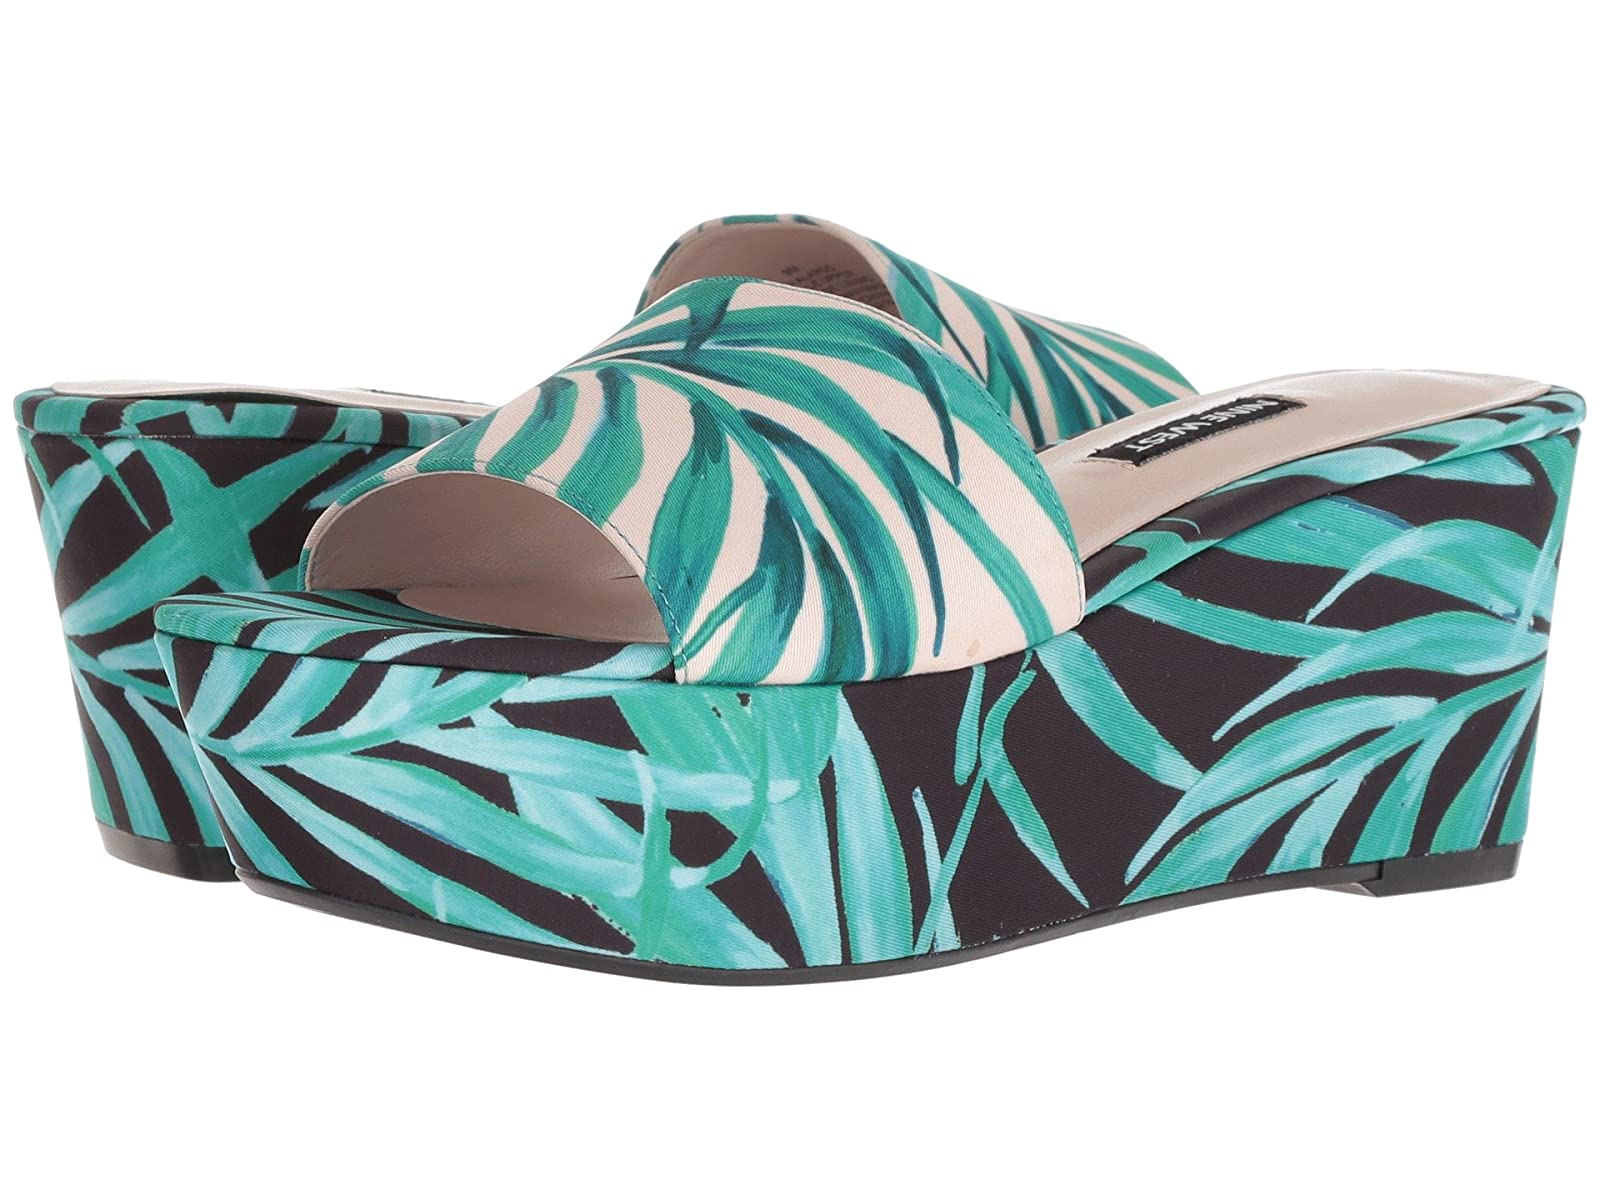 Nine West Falardo Platform Wedge Slide SandalCheap and distinctive eye-catching shoes